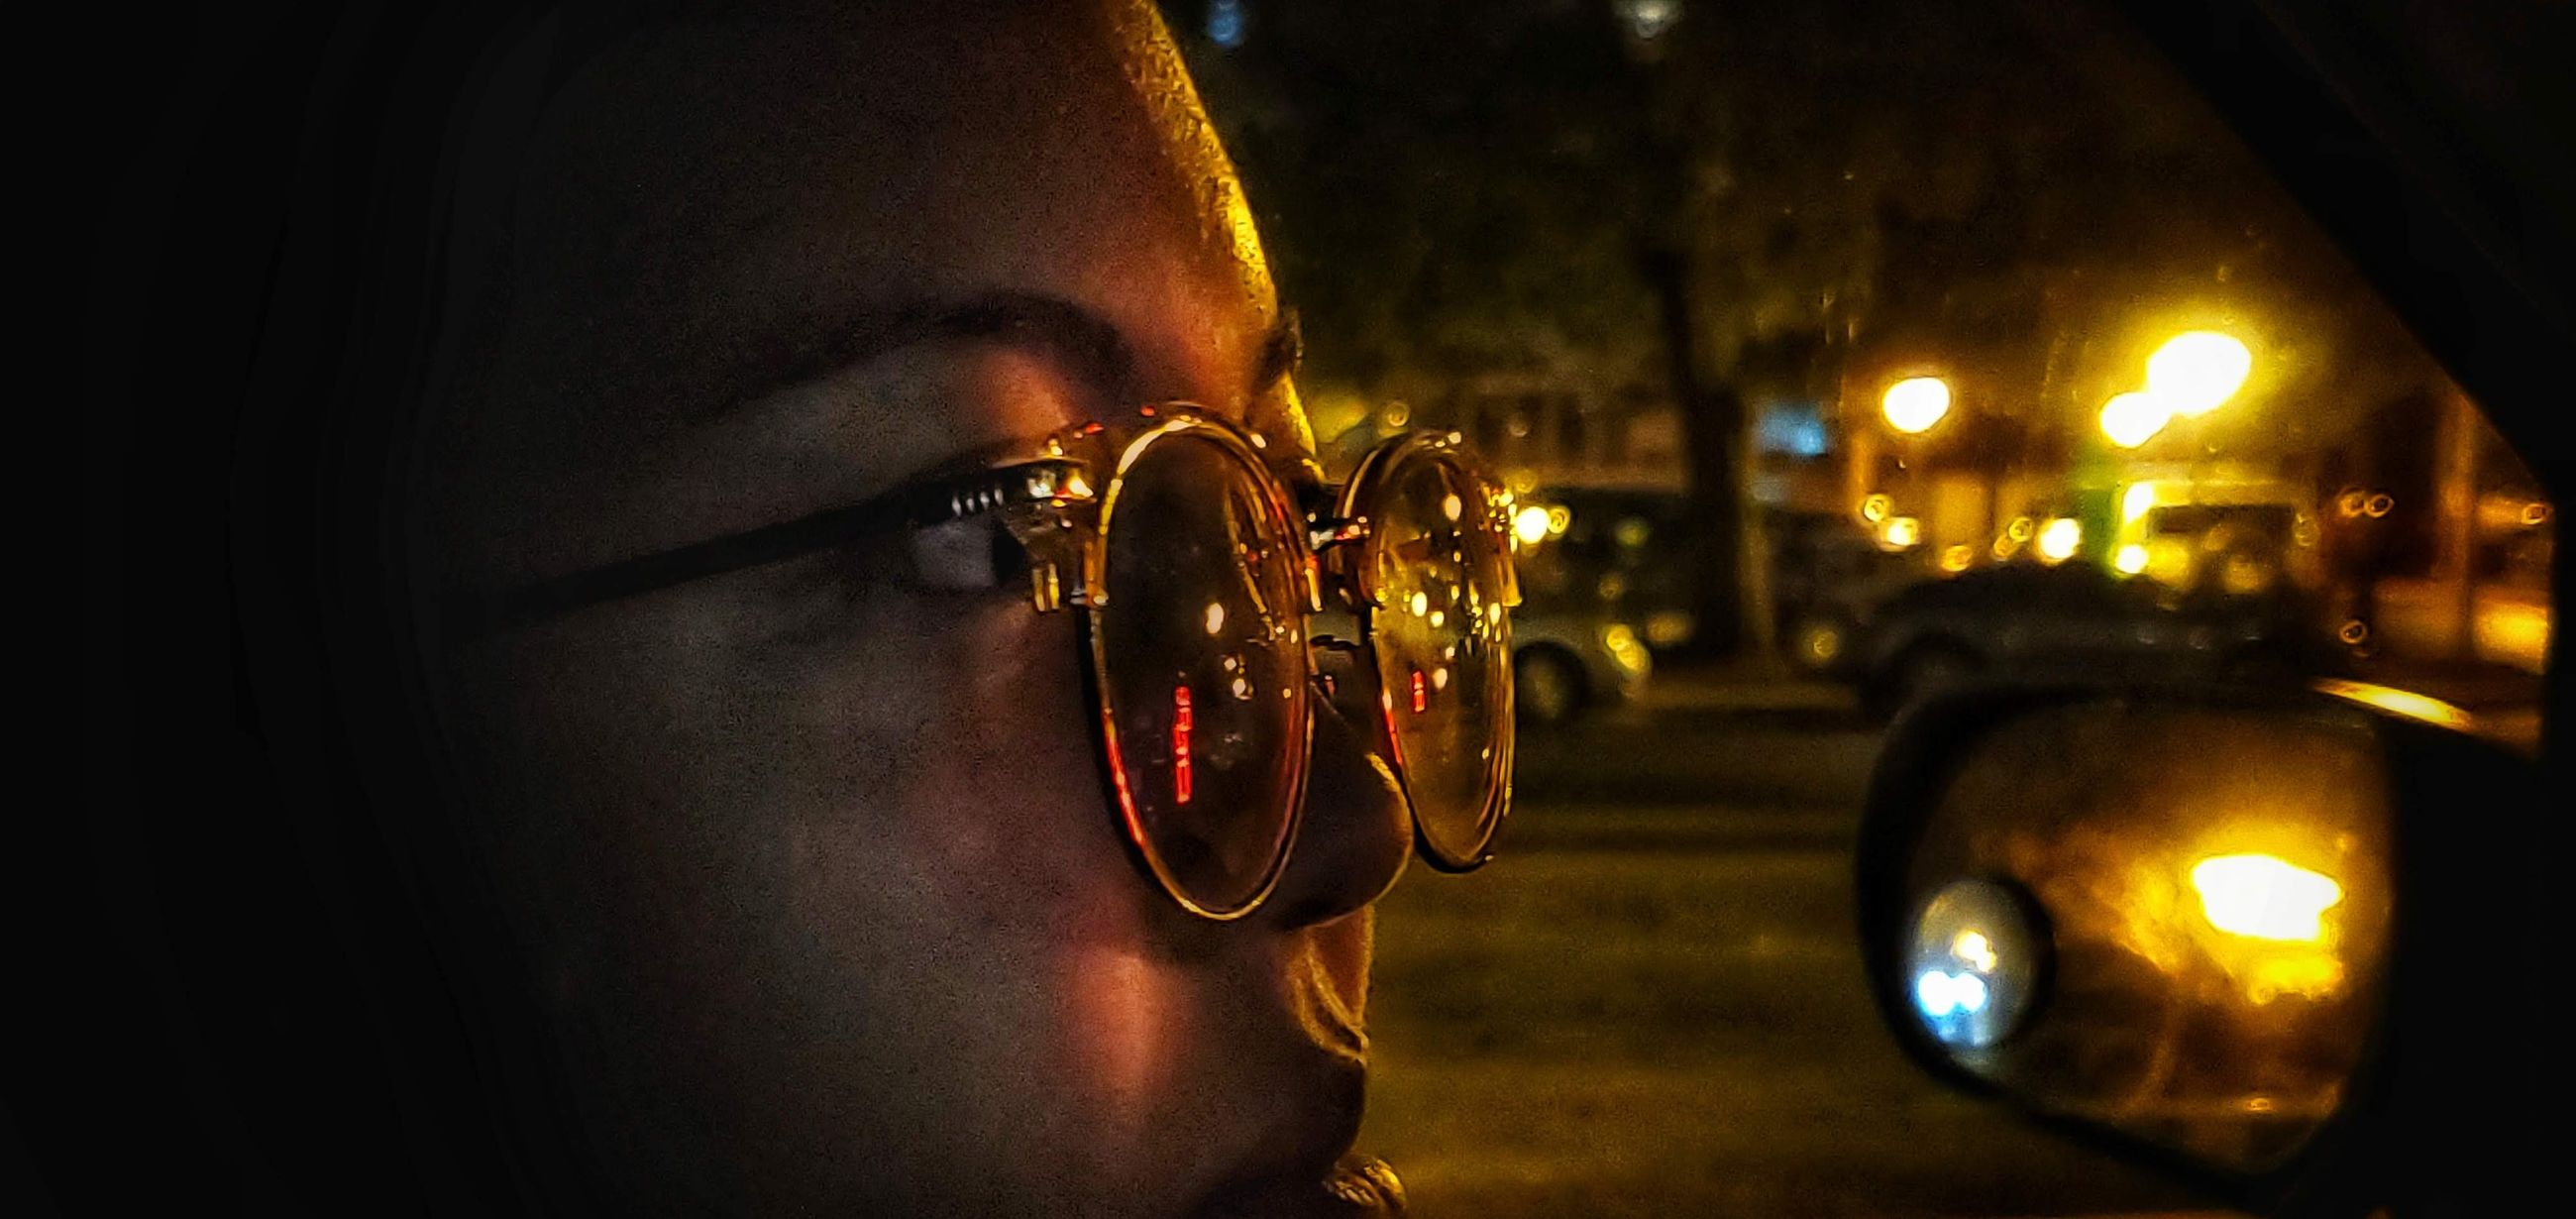 close-up, human body part, mode of transportation, focus on foreground, one person, illuminated, car, night, motor vehicle, land vehicle, transportation, real people, body part, outdoors, human hand, glasses, security, reflection, fashion